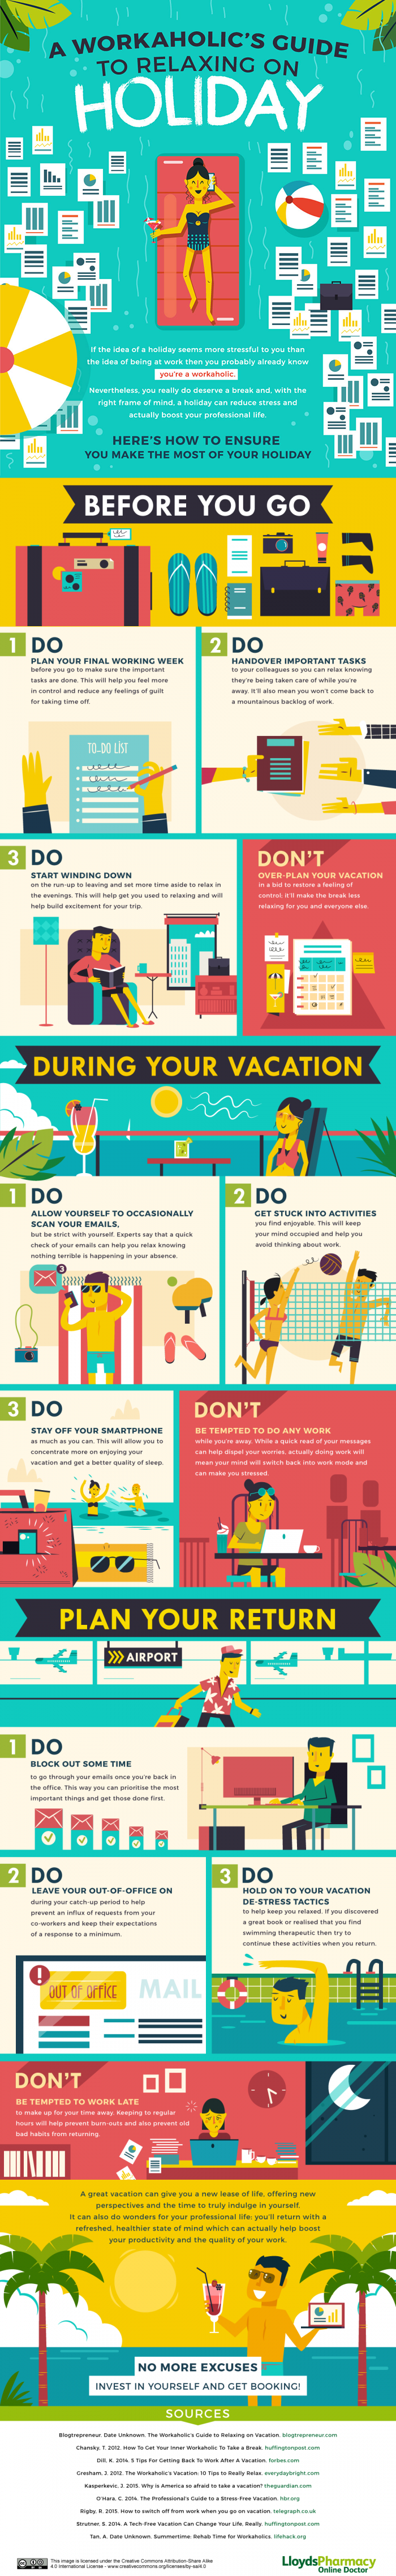 A Workaholic's Guide to Relaxing on Holiday #infographic